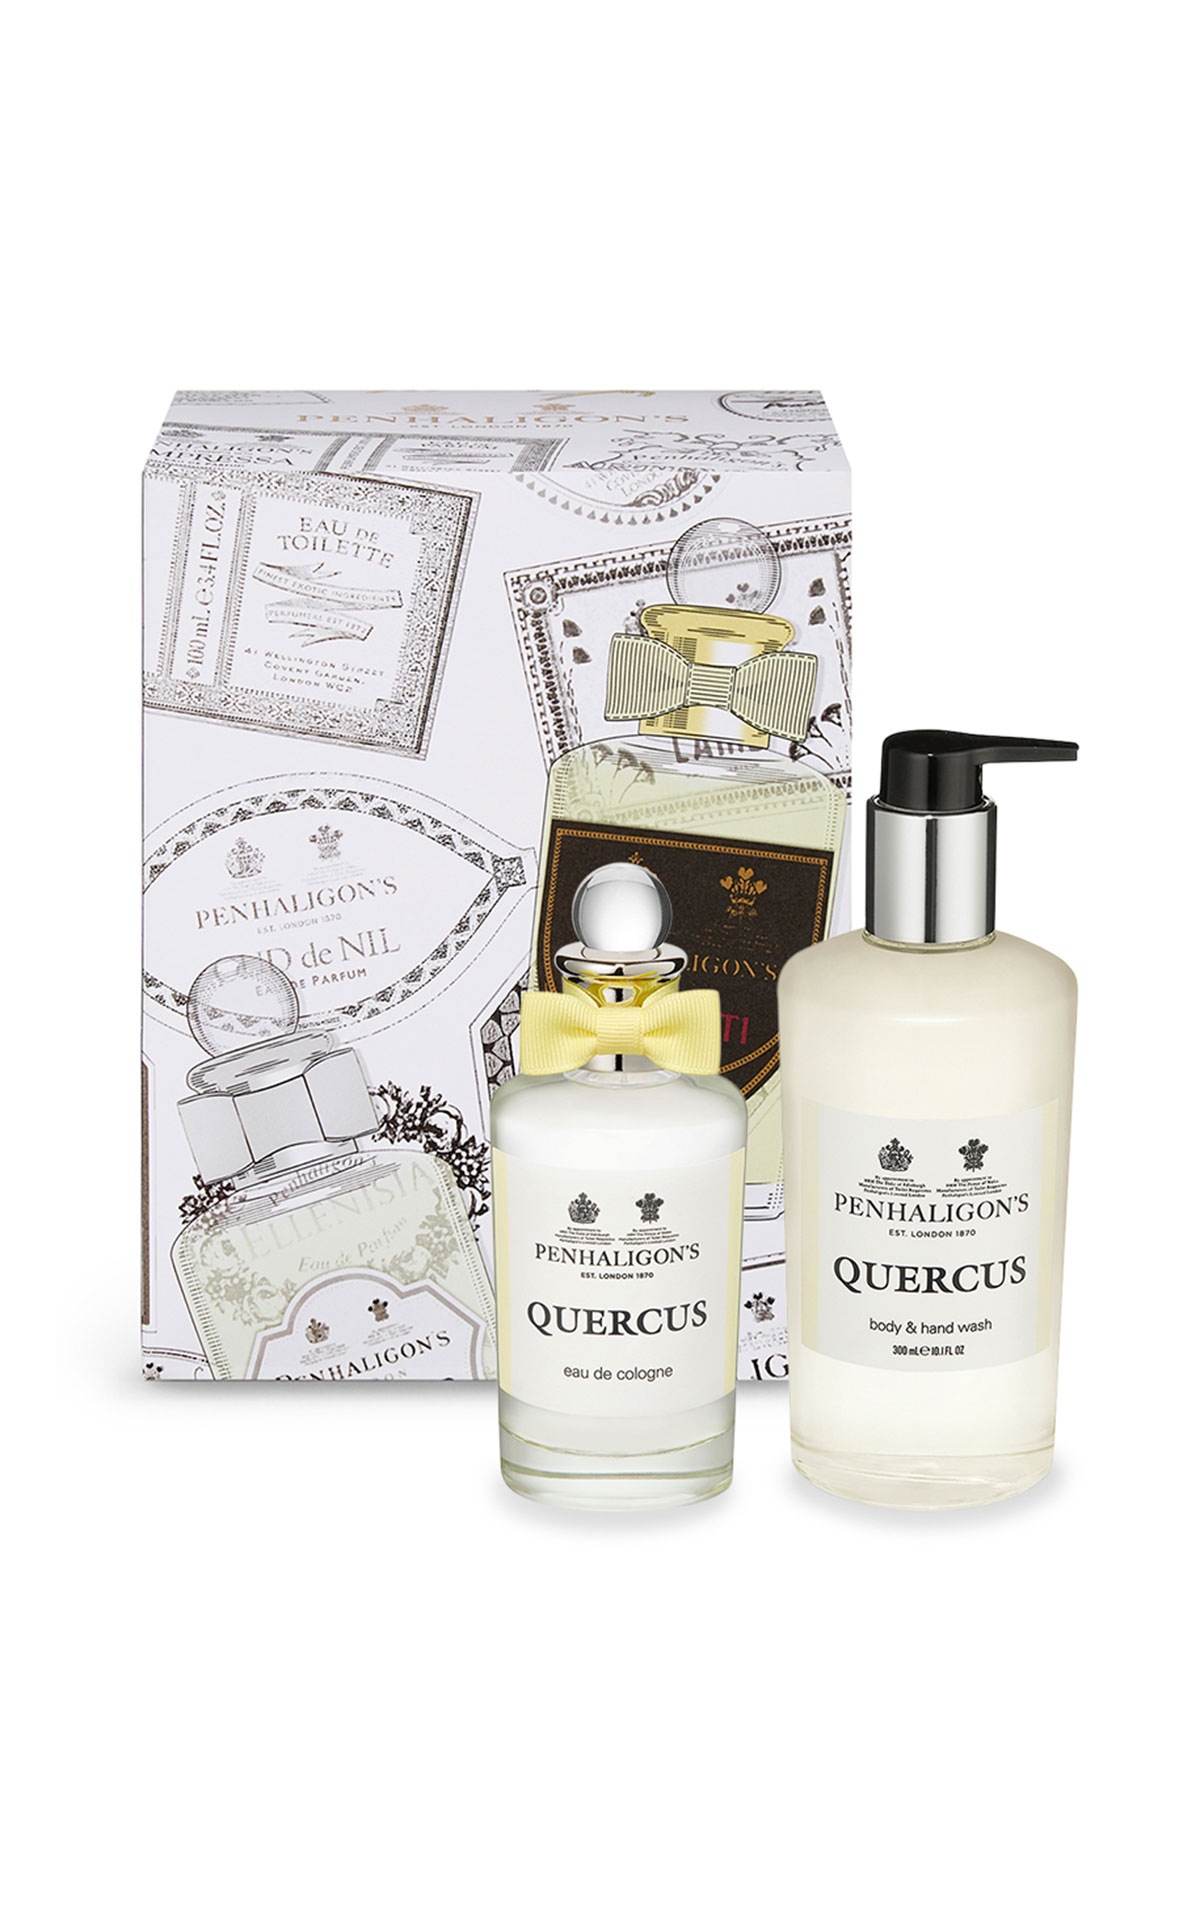 Penhaligon's Quercus 100ml and body and hand wash from Bicester Village